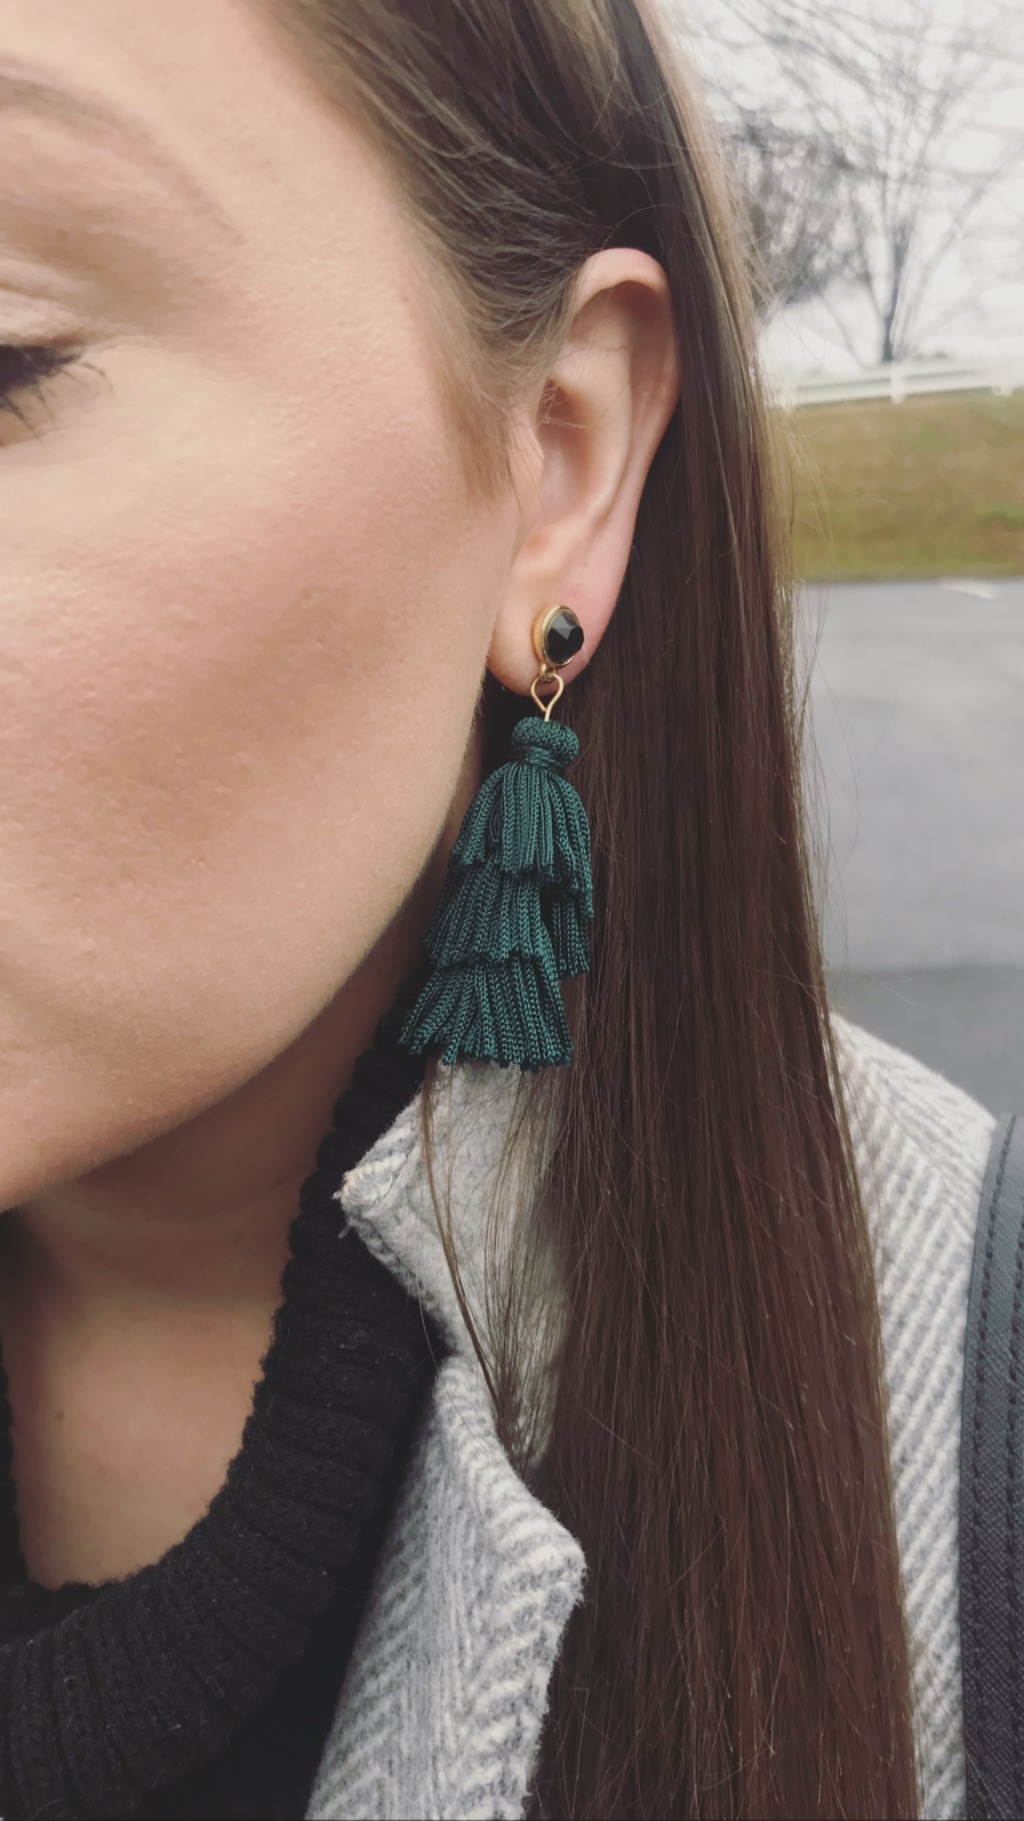 I normally only like green when it's money, but these earrings are worth it. - Stone Tassel Earrings in the color Jade by LOFT. My husband picked these out for me. (: